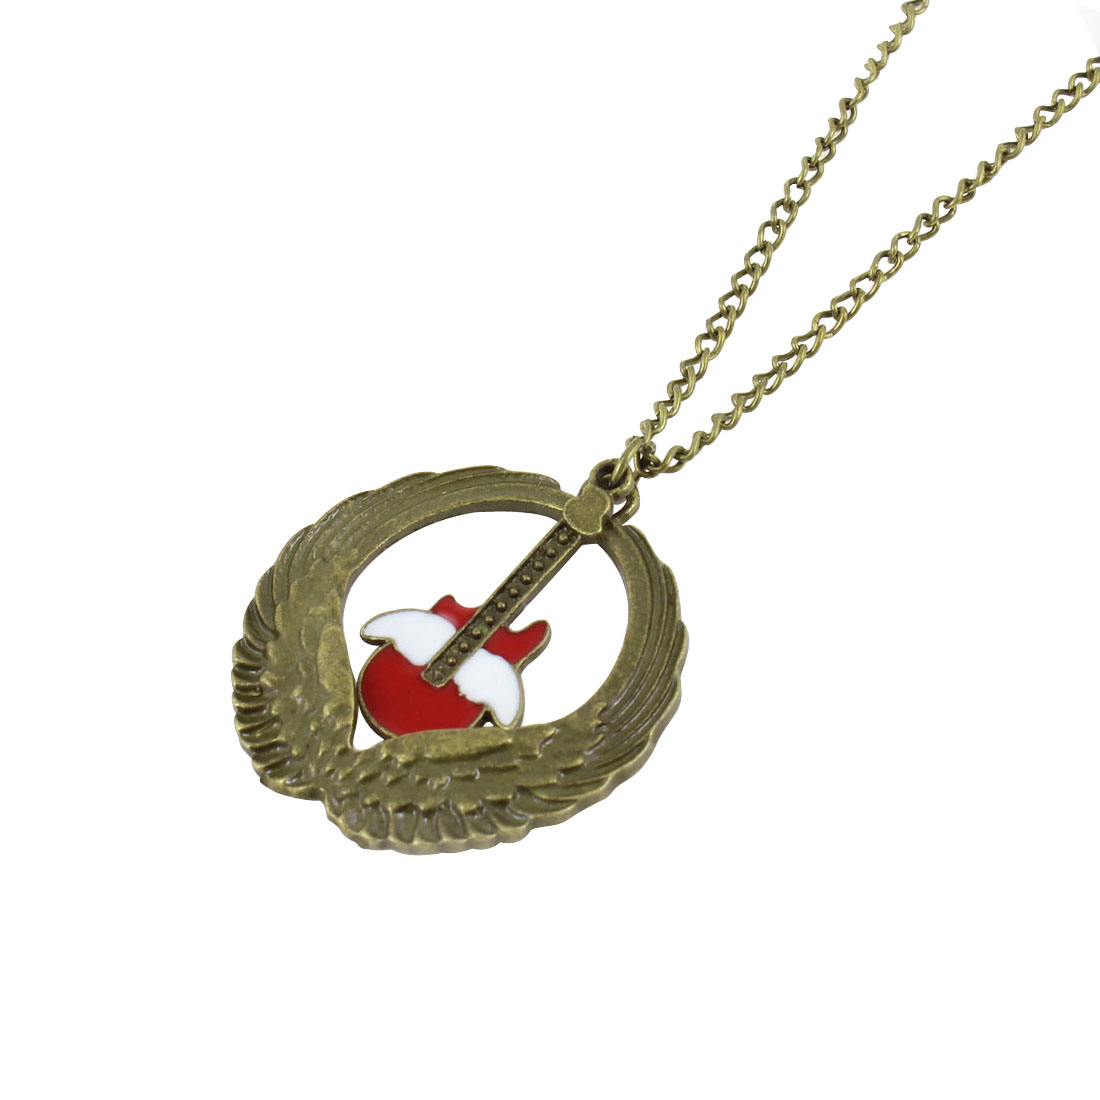 Lobster Closure Round Pendant Bronze Tone Necklace for Women Girls